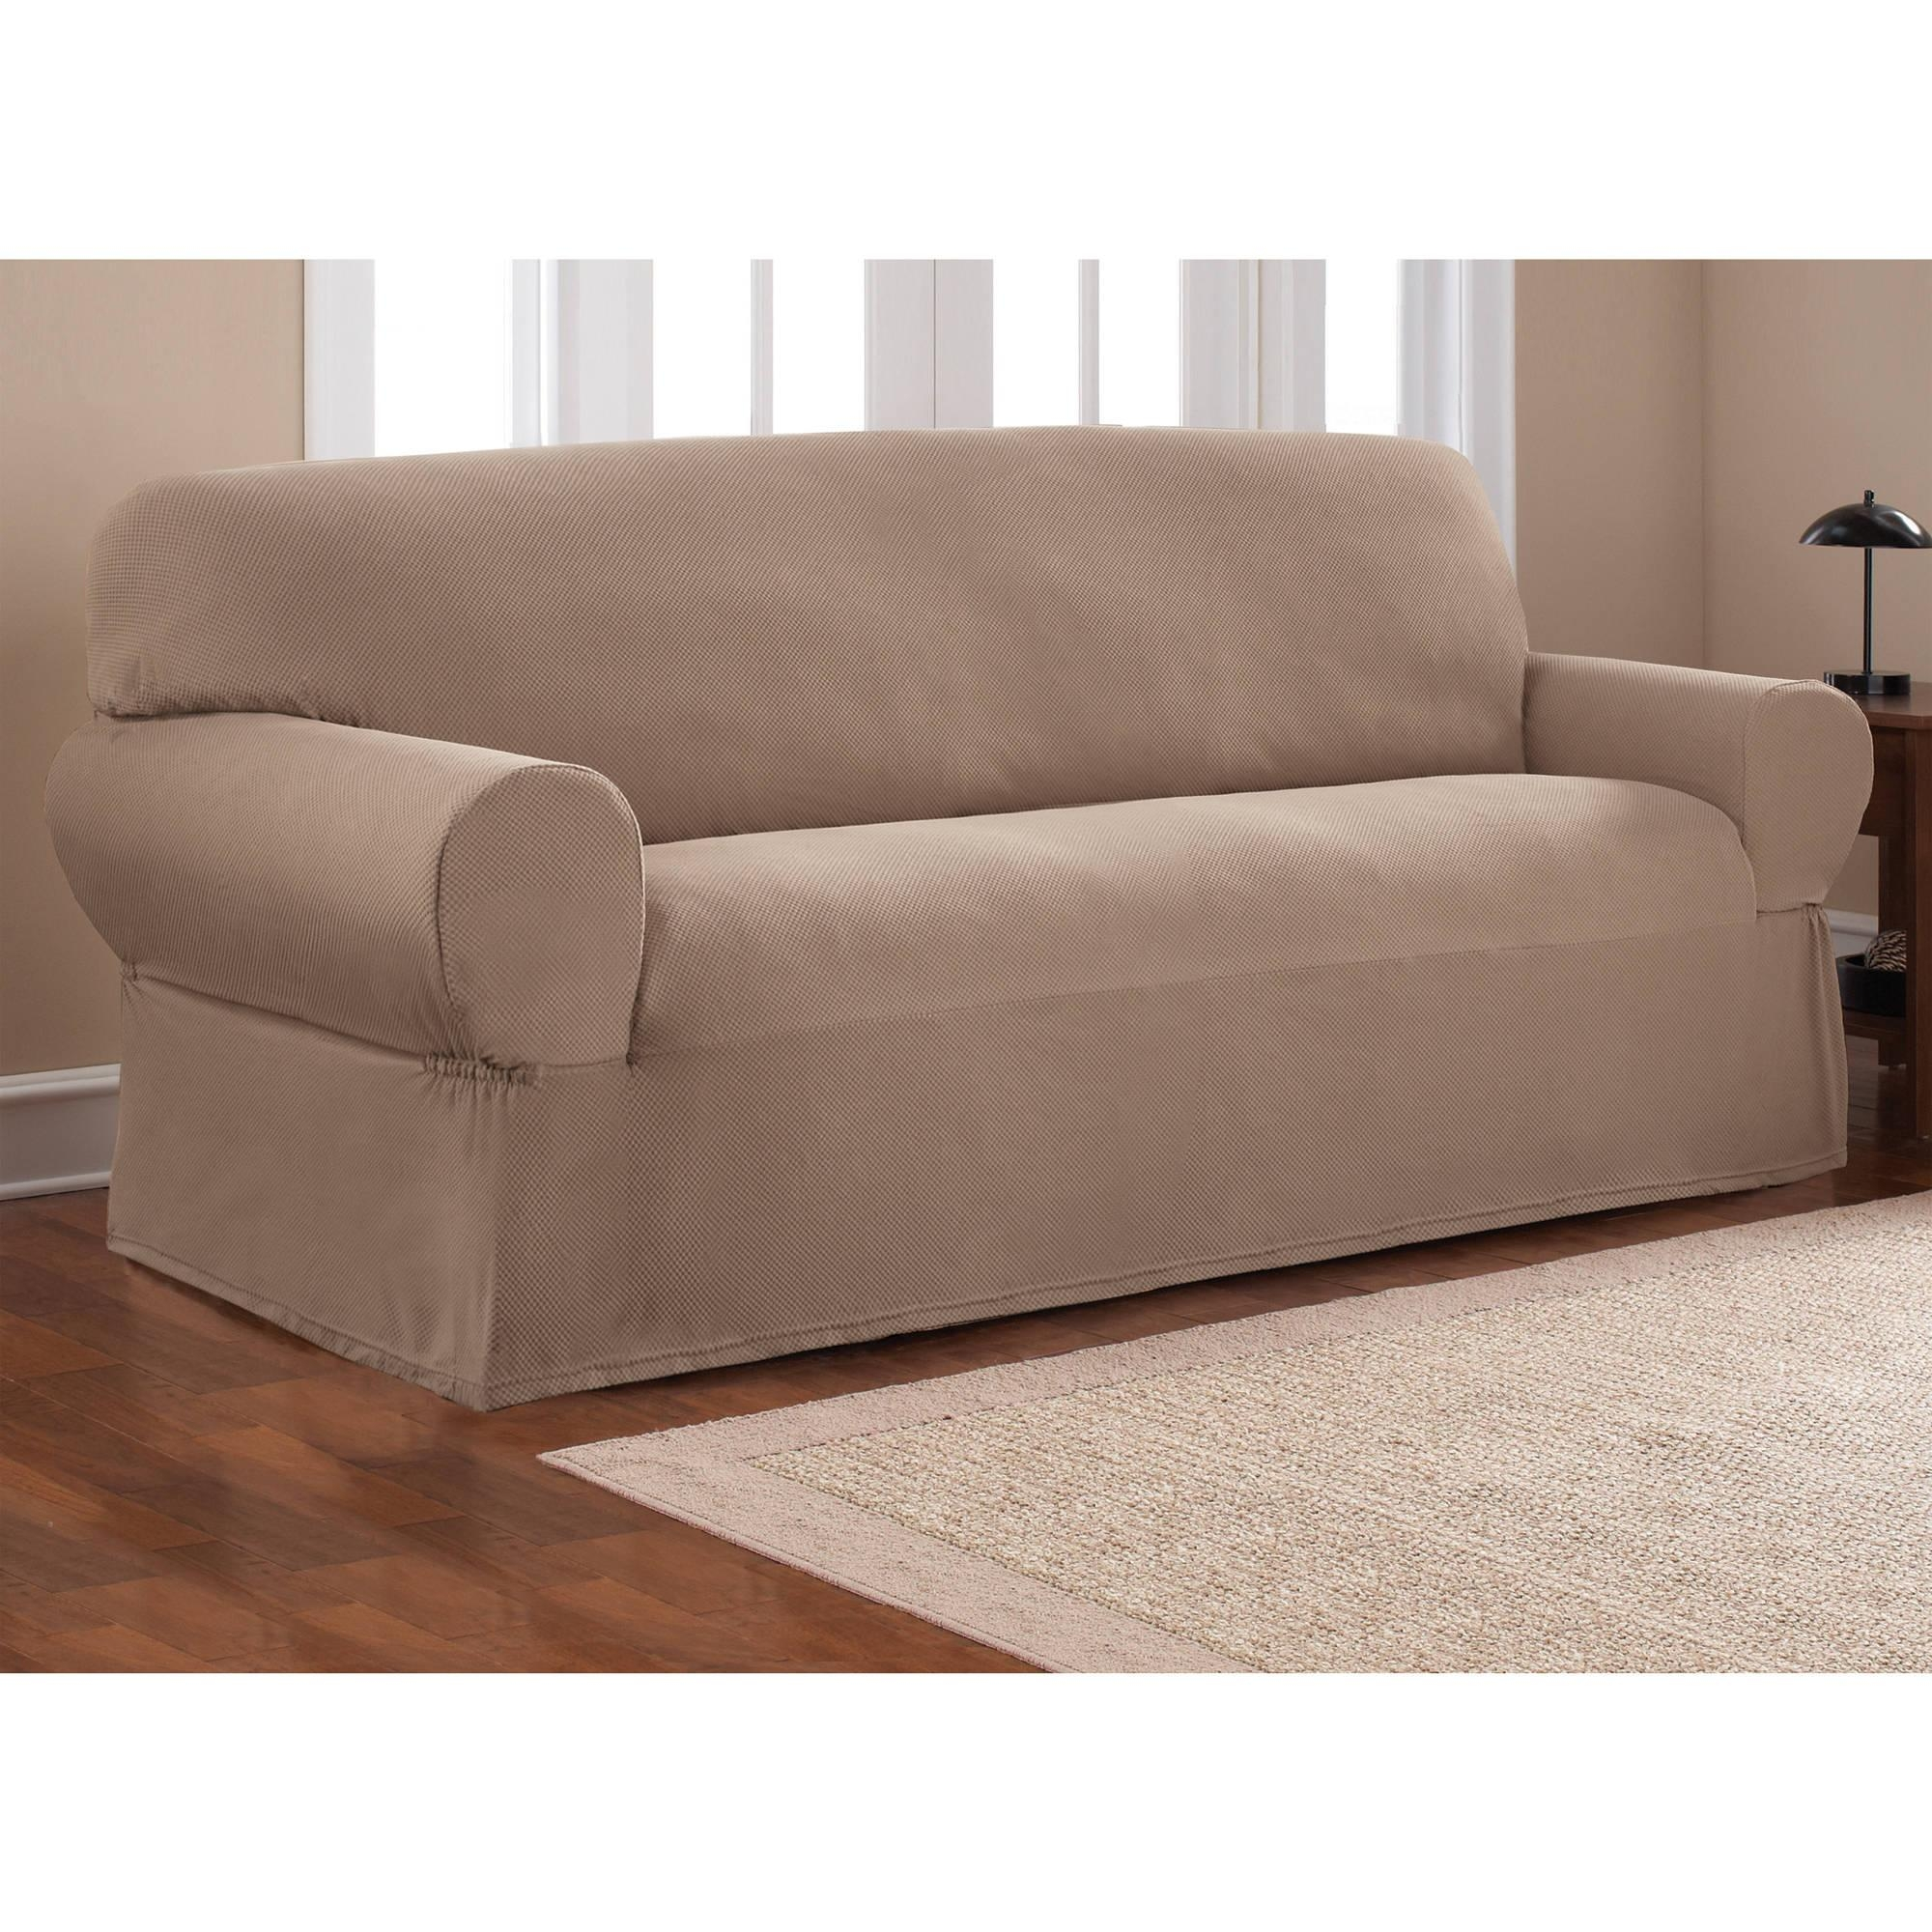 Furniture: Couch Slip Covers | Stretch Sofa Covers | Recliner Cover Intended For Stretch Covers For Recliners (View 13 of 20)